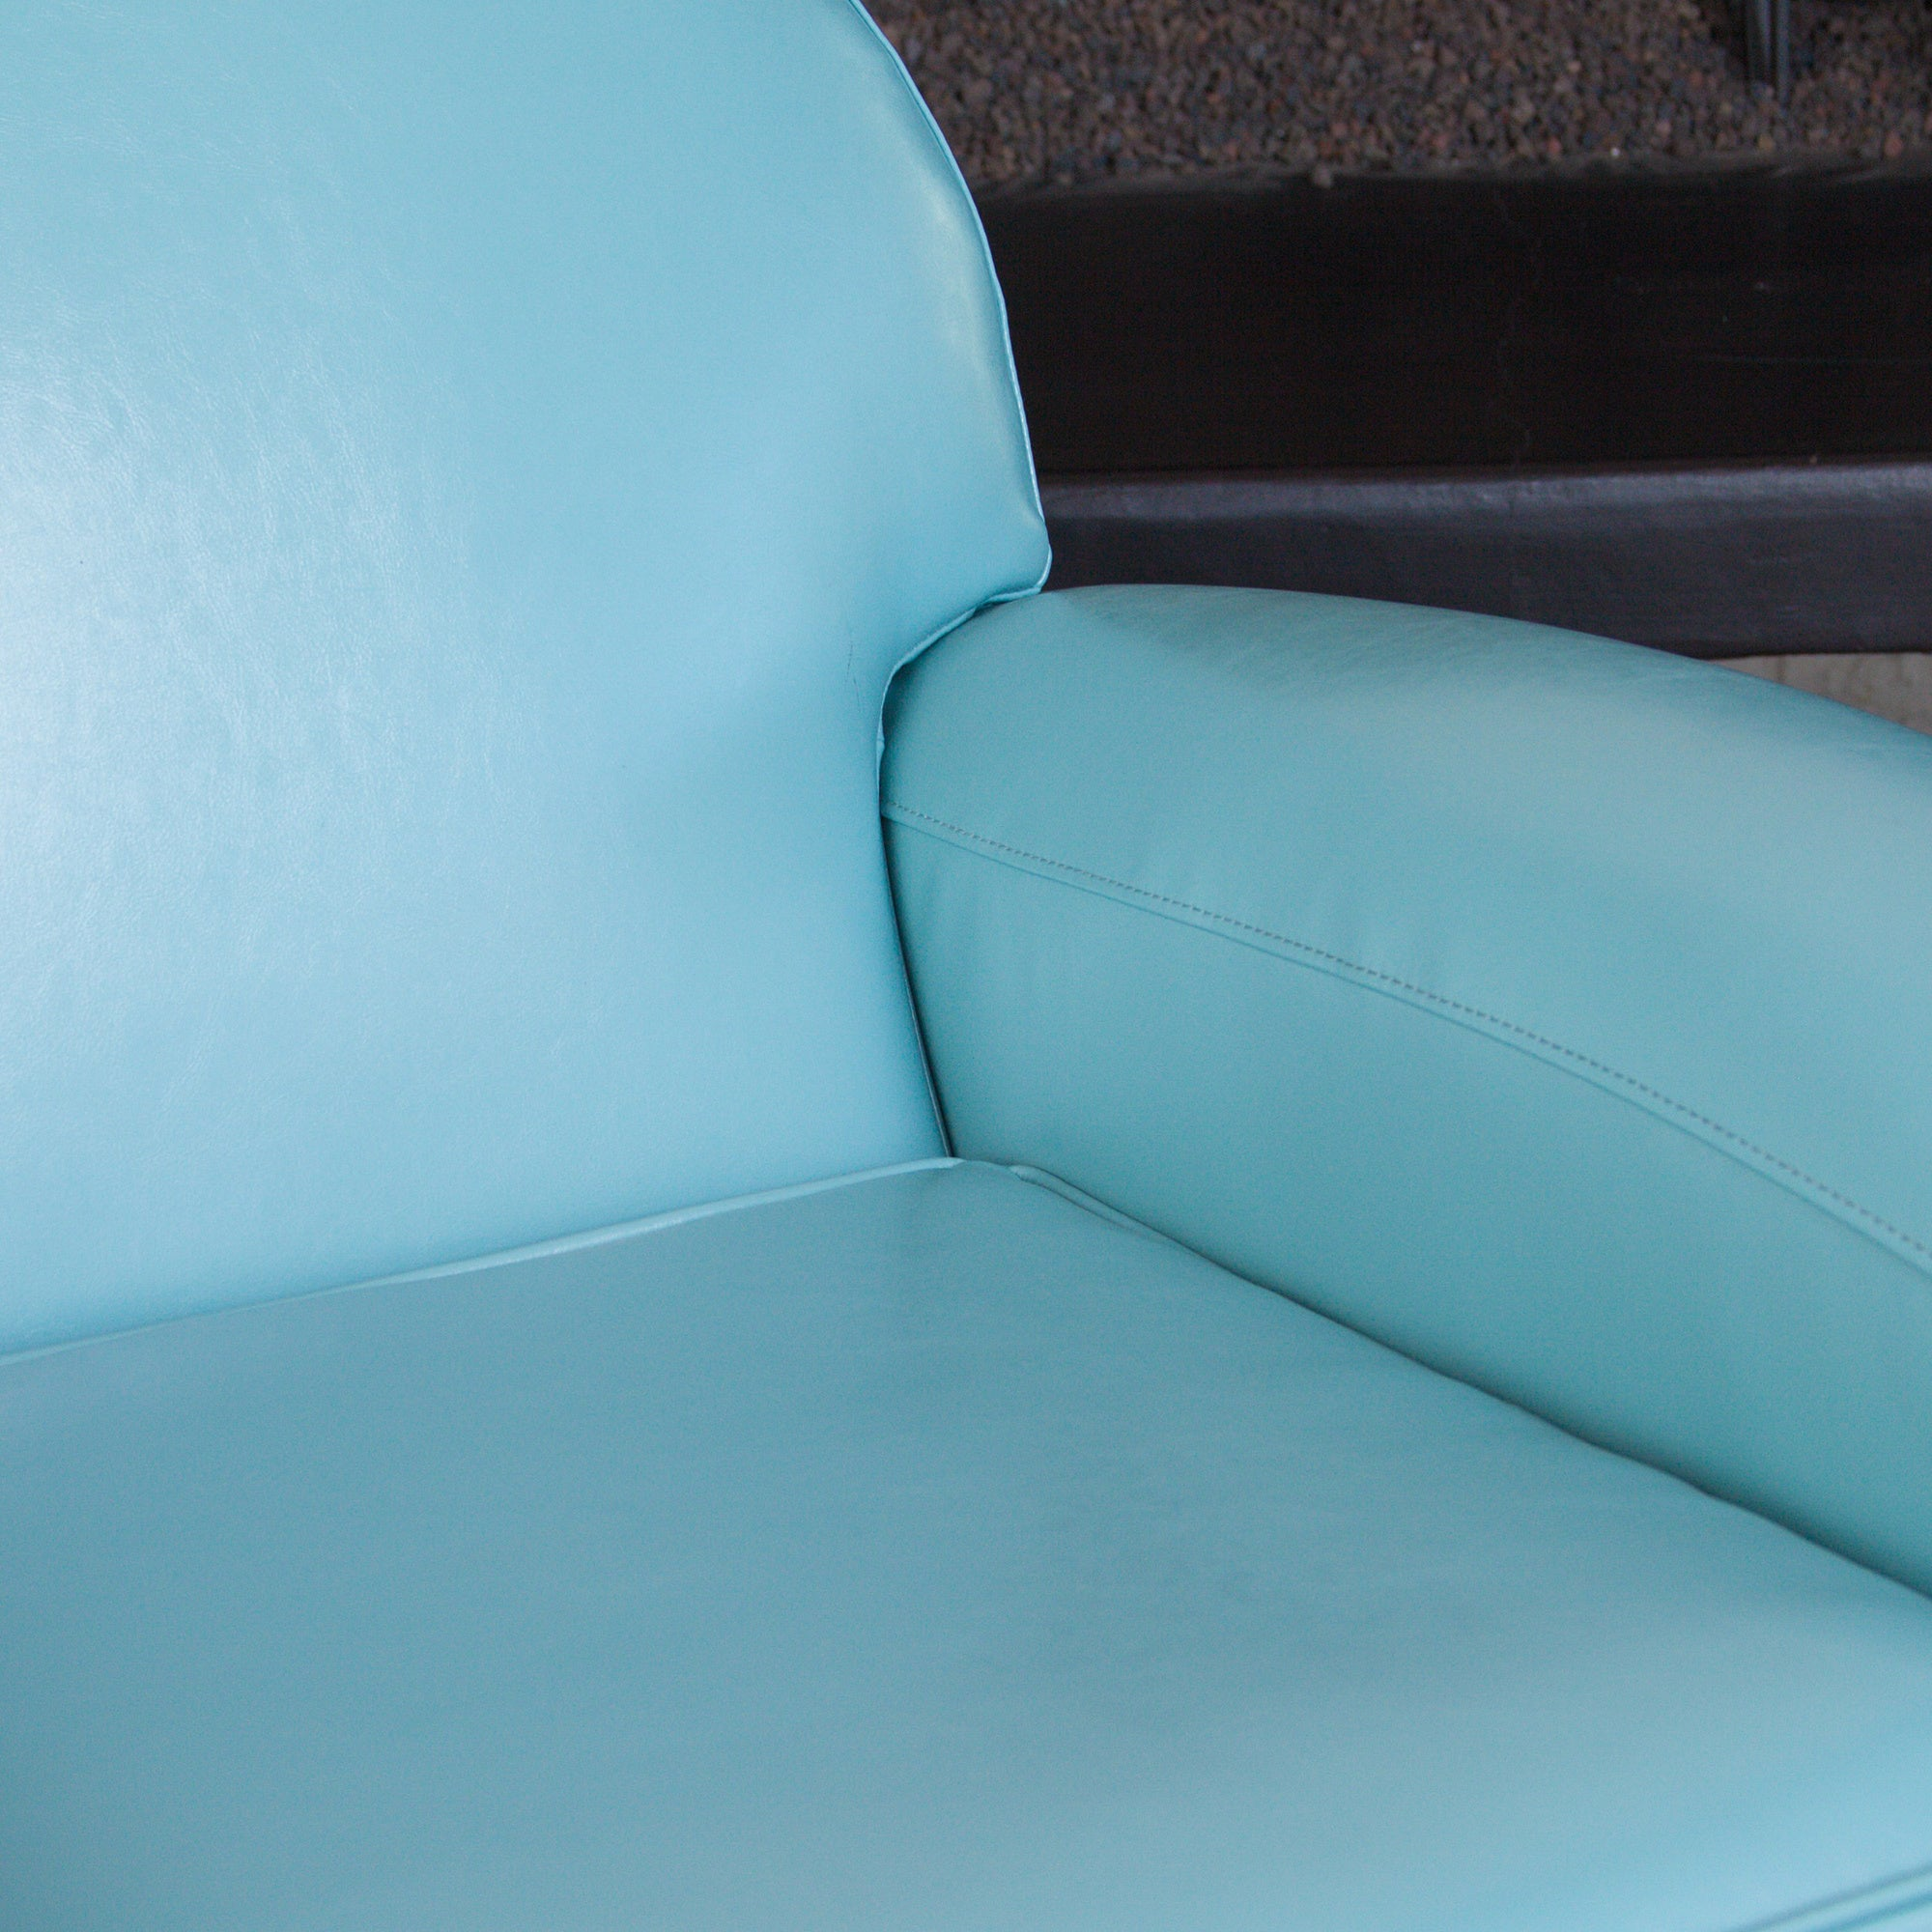 david teal blue leather club chair by christopher knight home